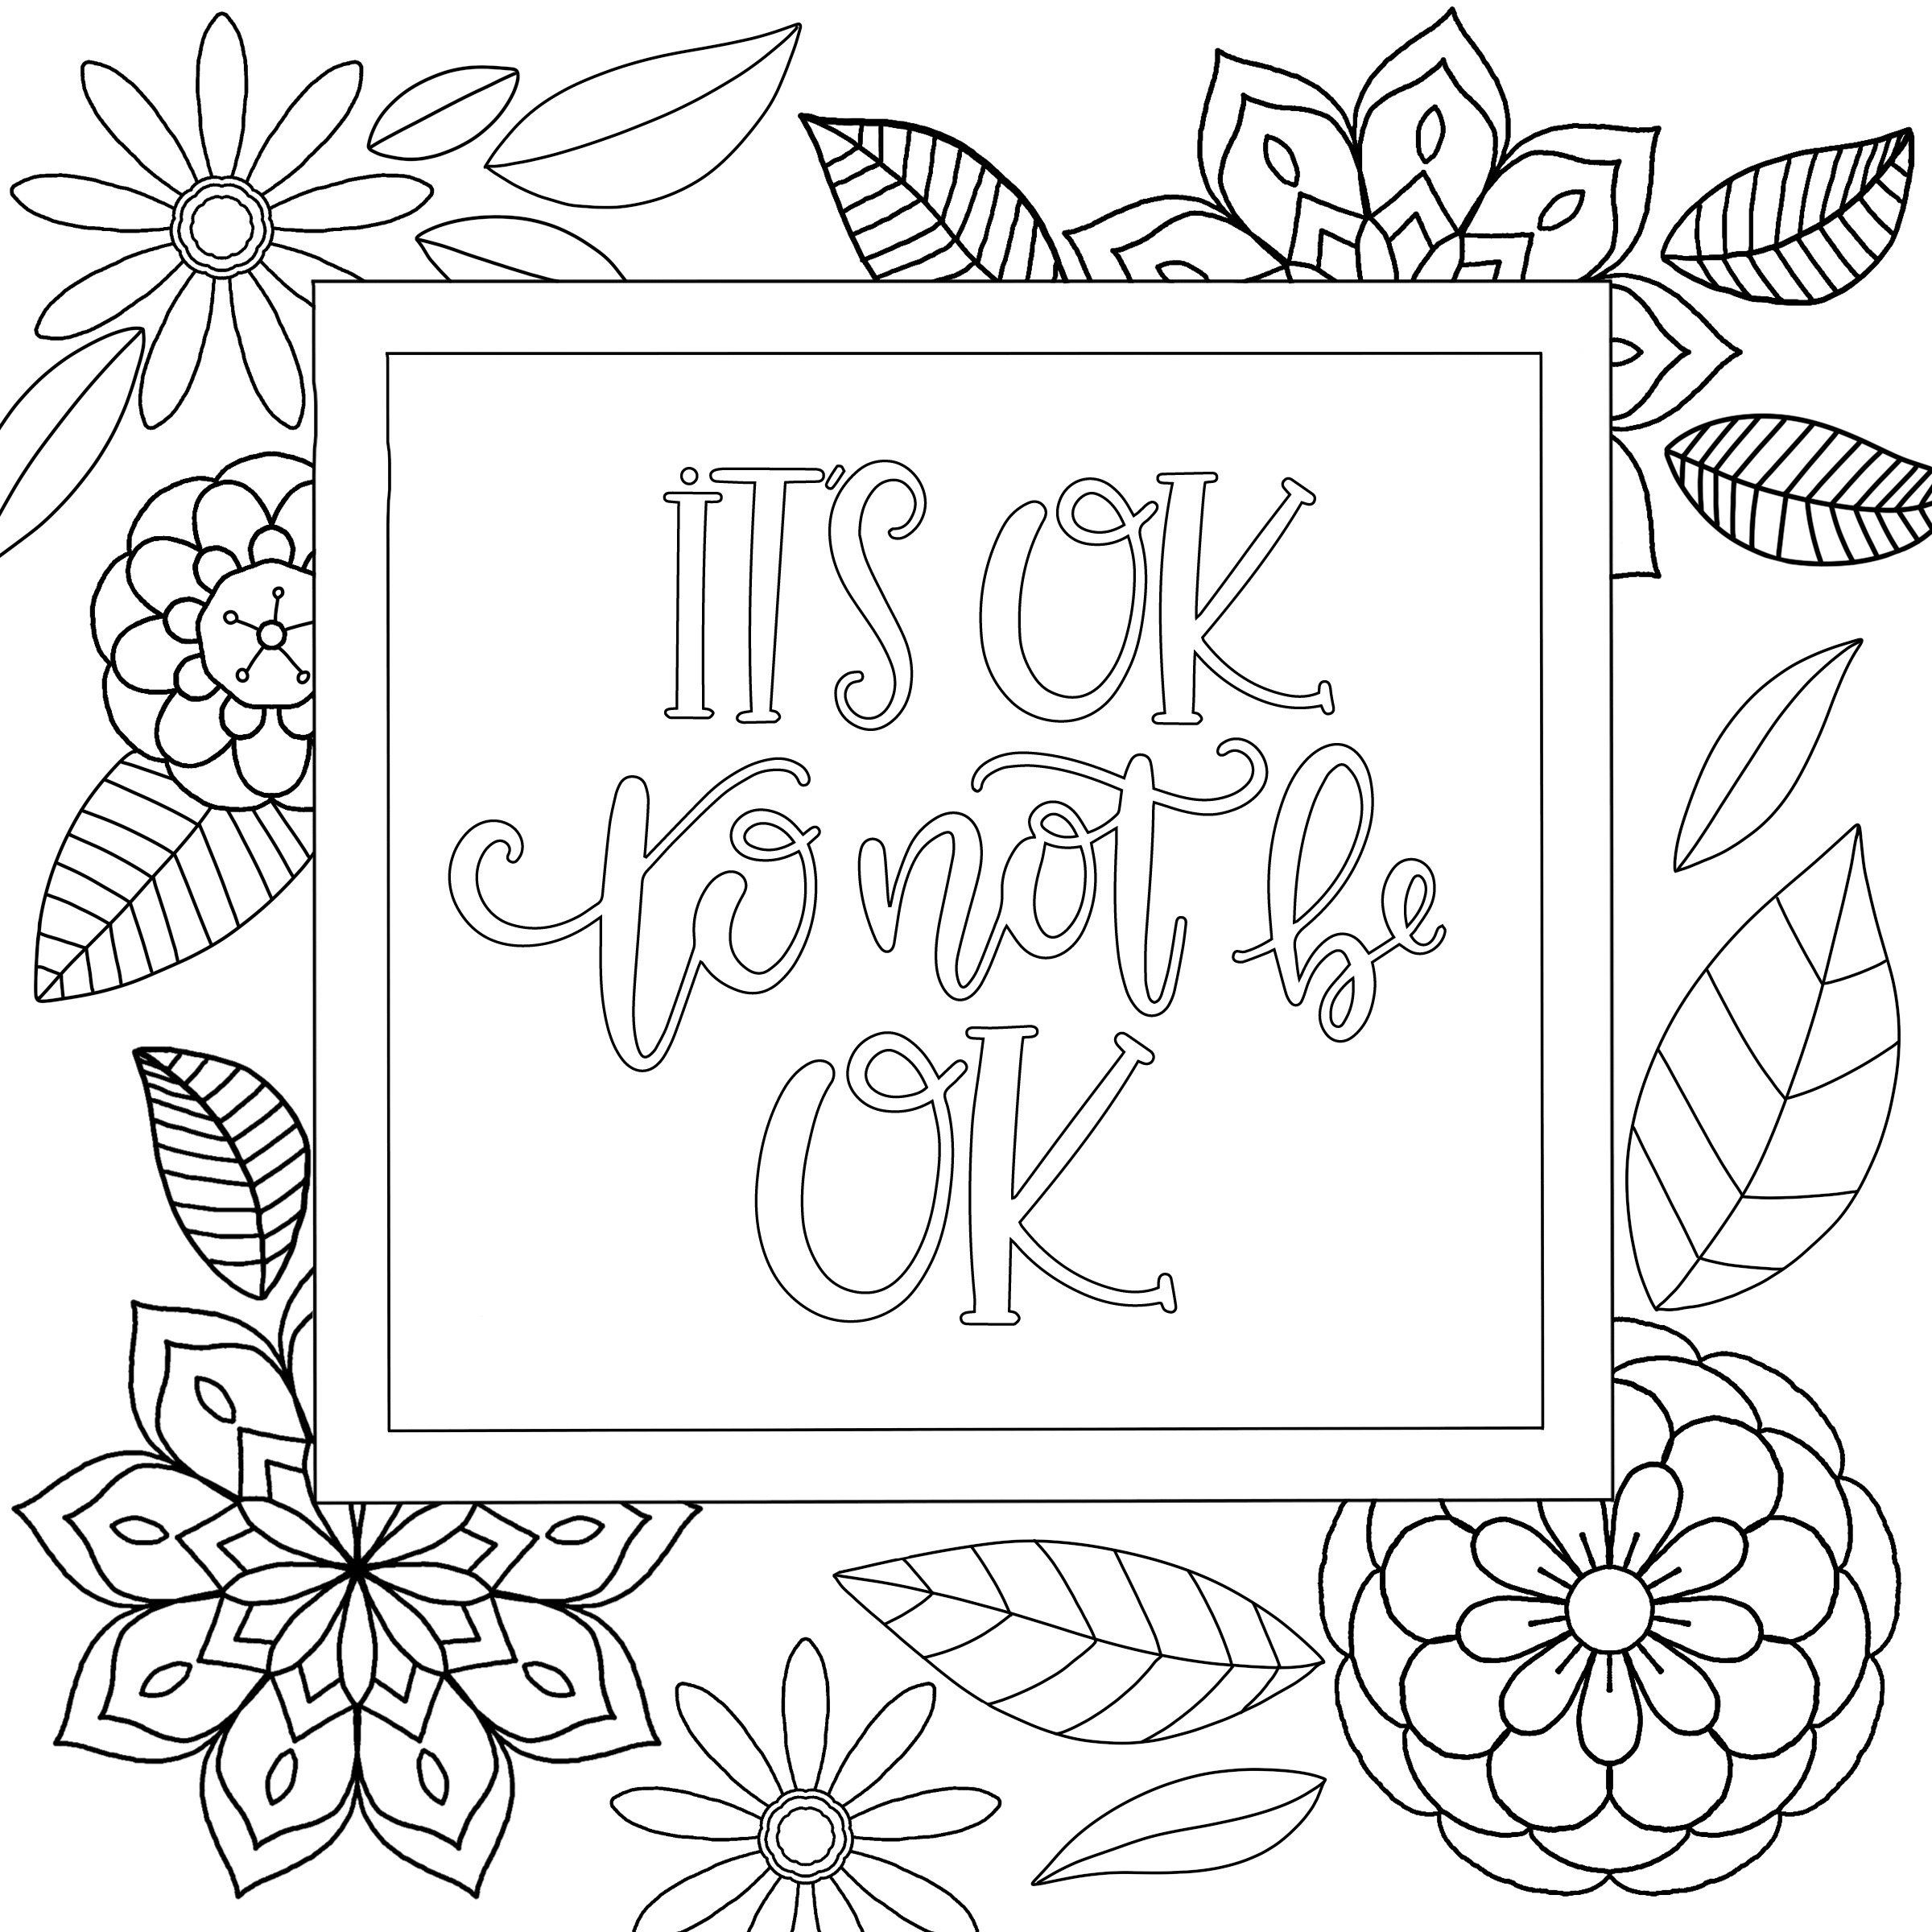 3 Motivational Printable Coloring Pages Zentangle Coloring Etsy Love Coloring Pages Quote Coloring Pages Coloring Pages Inspirational